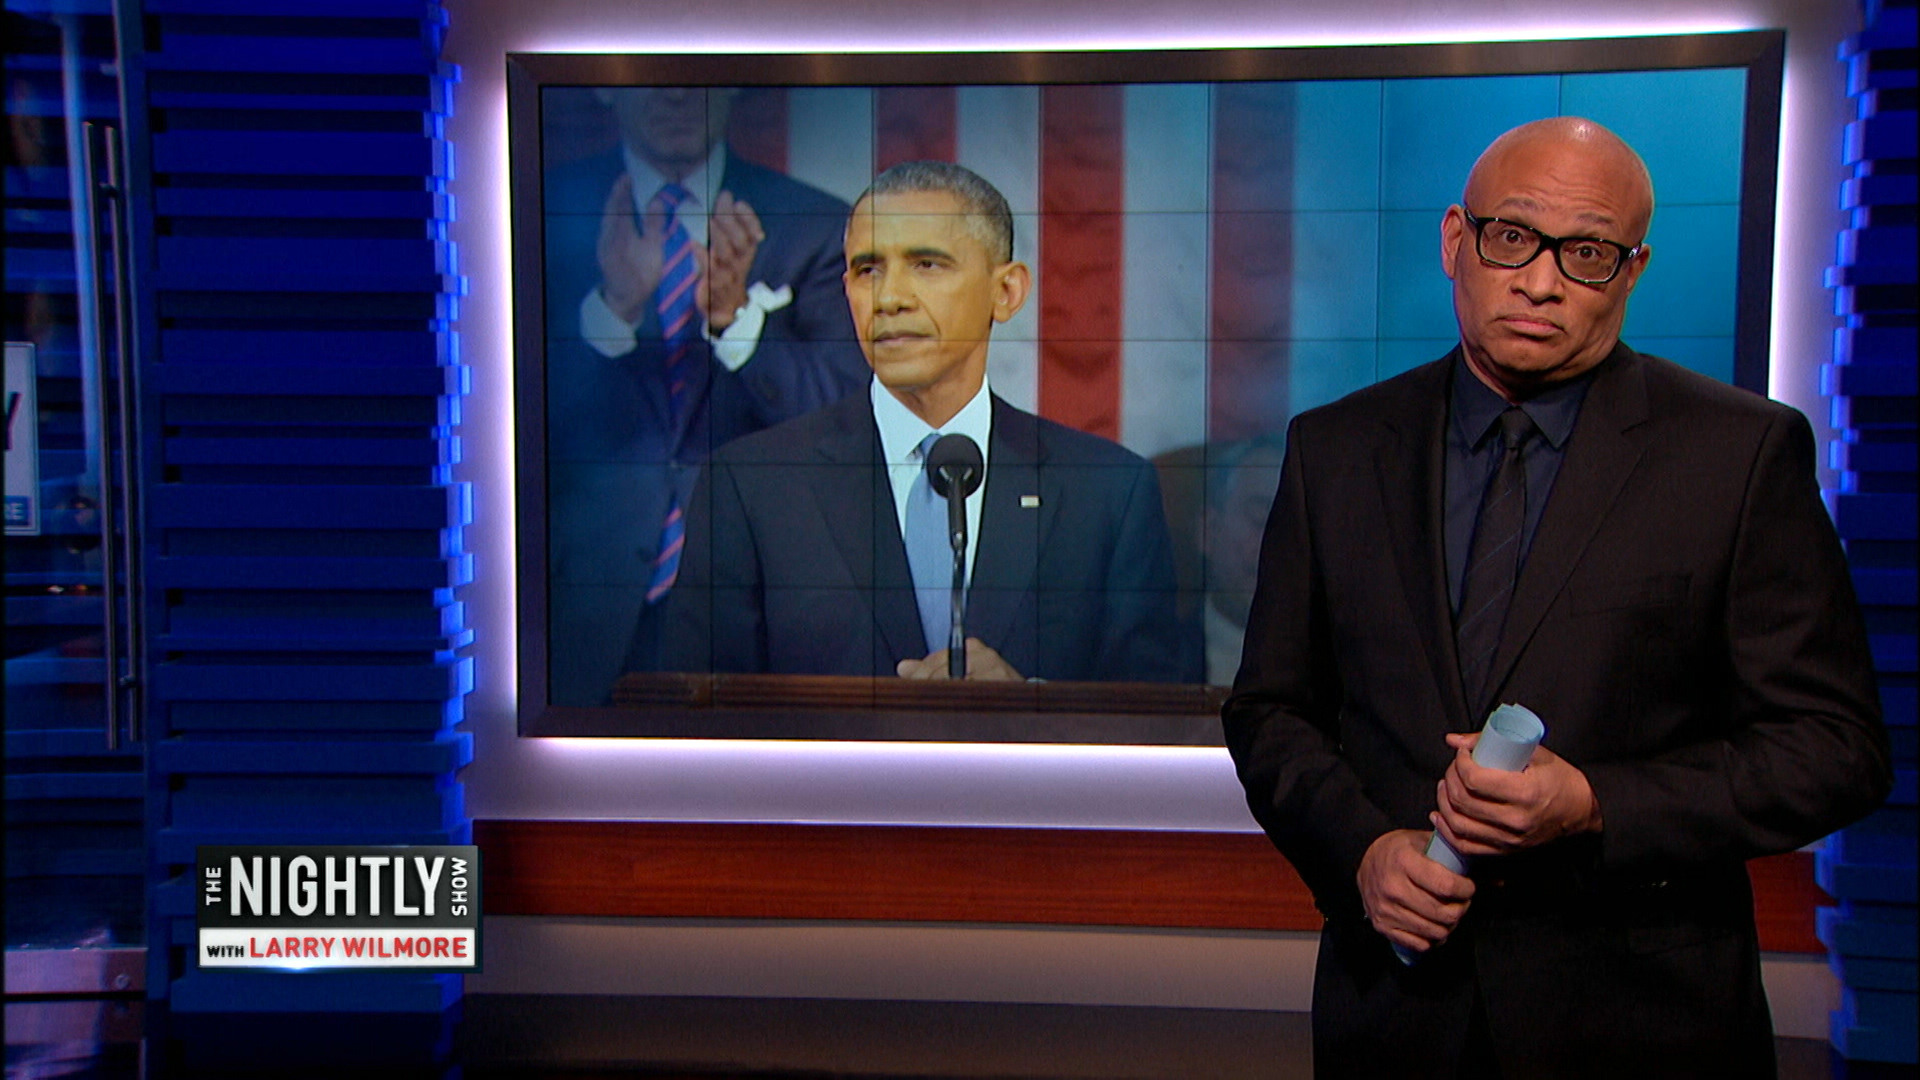 January 21, 2015 - Obama's State of the Union